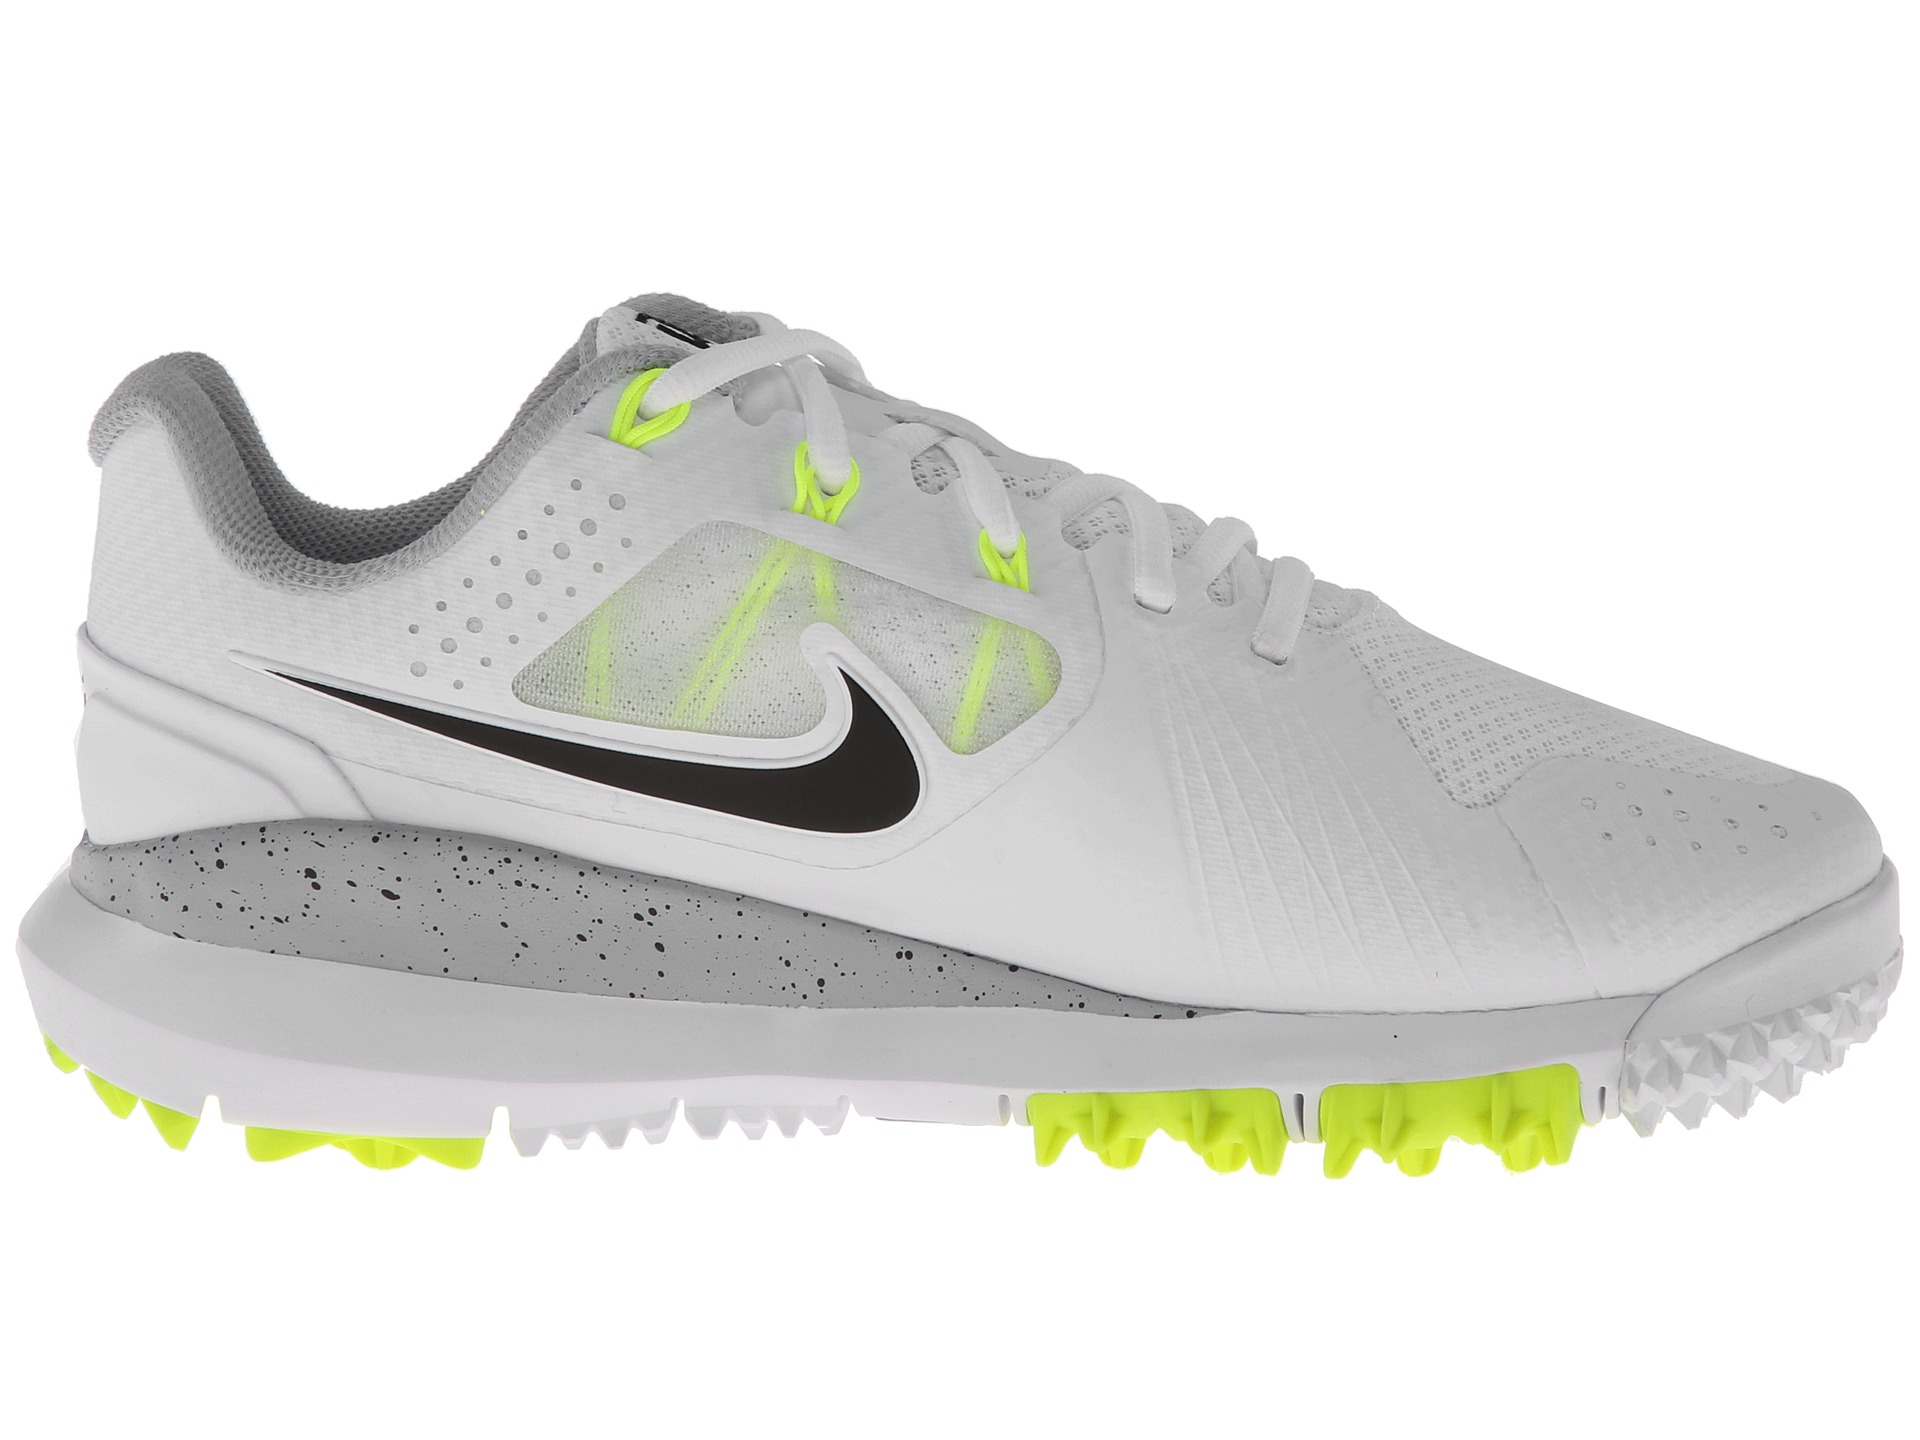 6b7ec016d3 Nike Free 5.0 V4 Ns Pt Review Kevin Durant All Shoes | Portal for ...